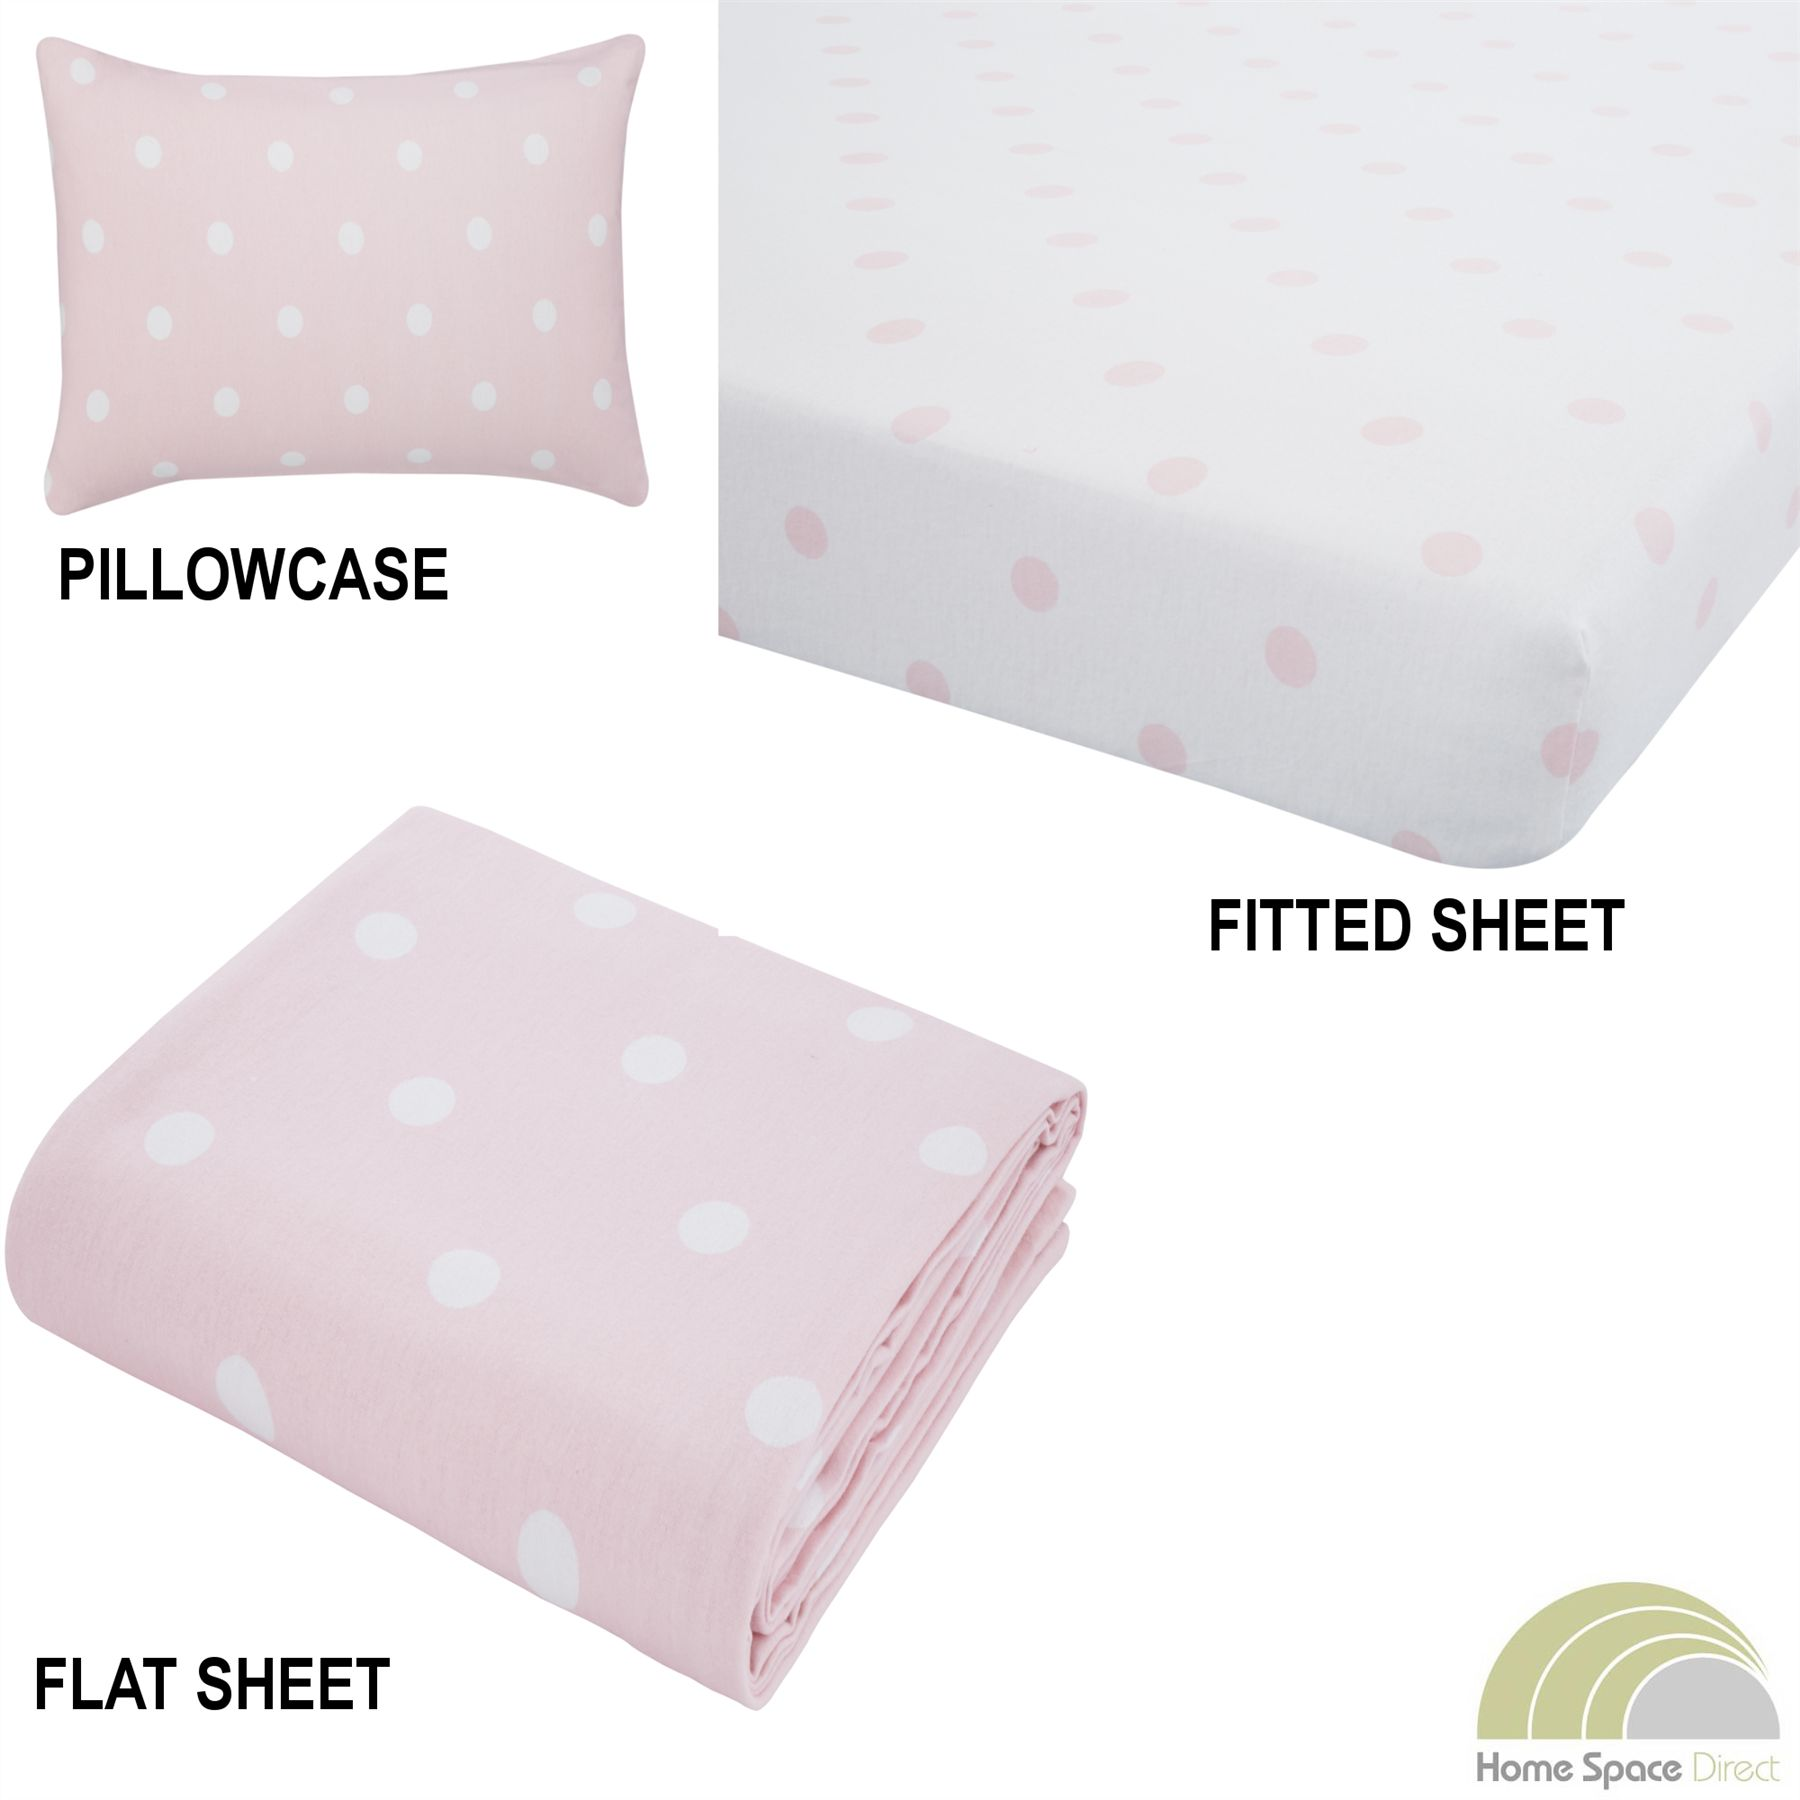 Flannelette Sheets Sale 100 Cotton Flannelette Sheets Fitted Flat Pillowcases